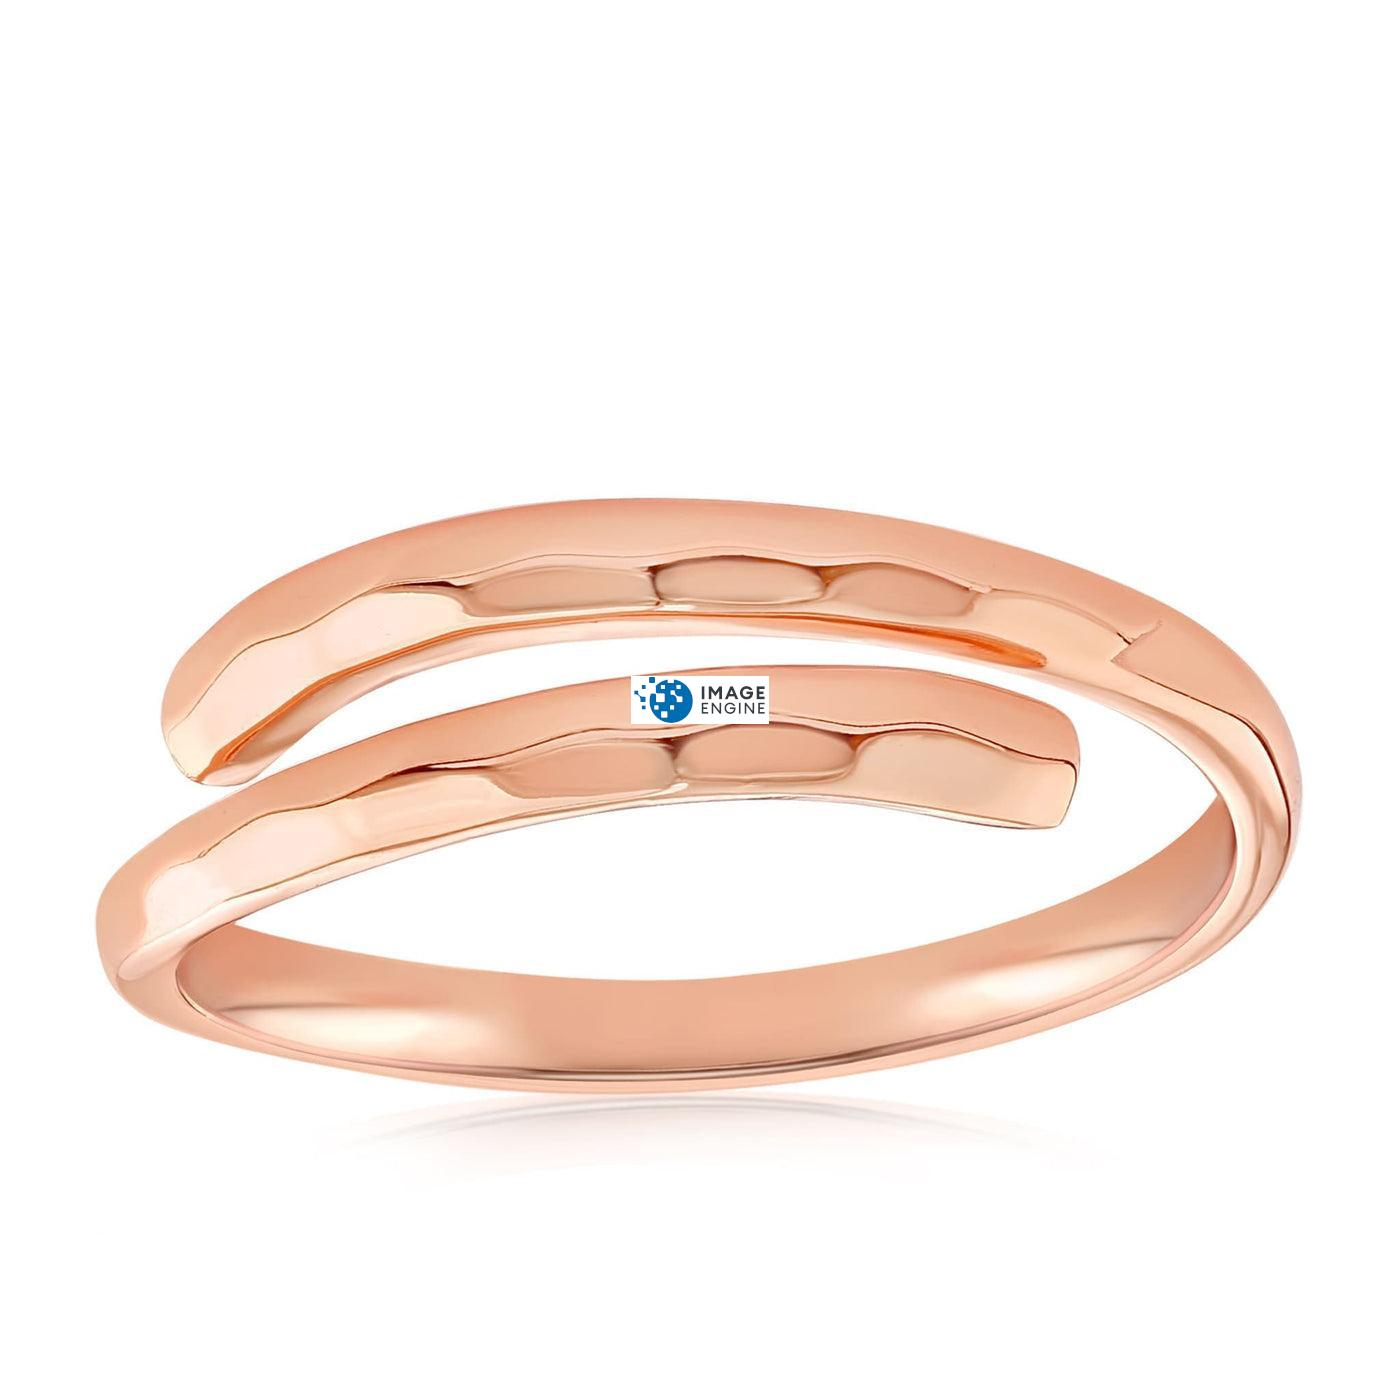 Minimalist Thumb Ring - Front View Facing Up - 18K Rose Gold Vermeil